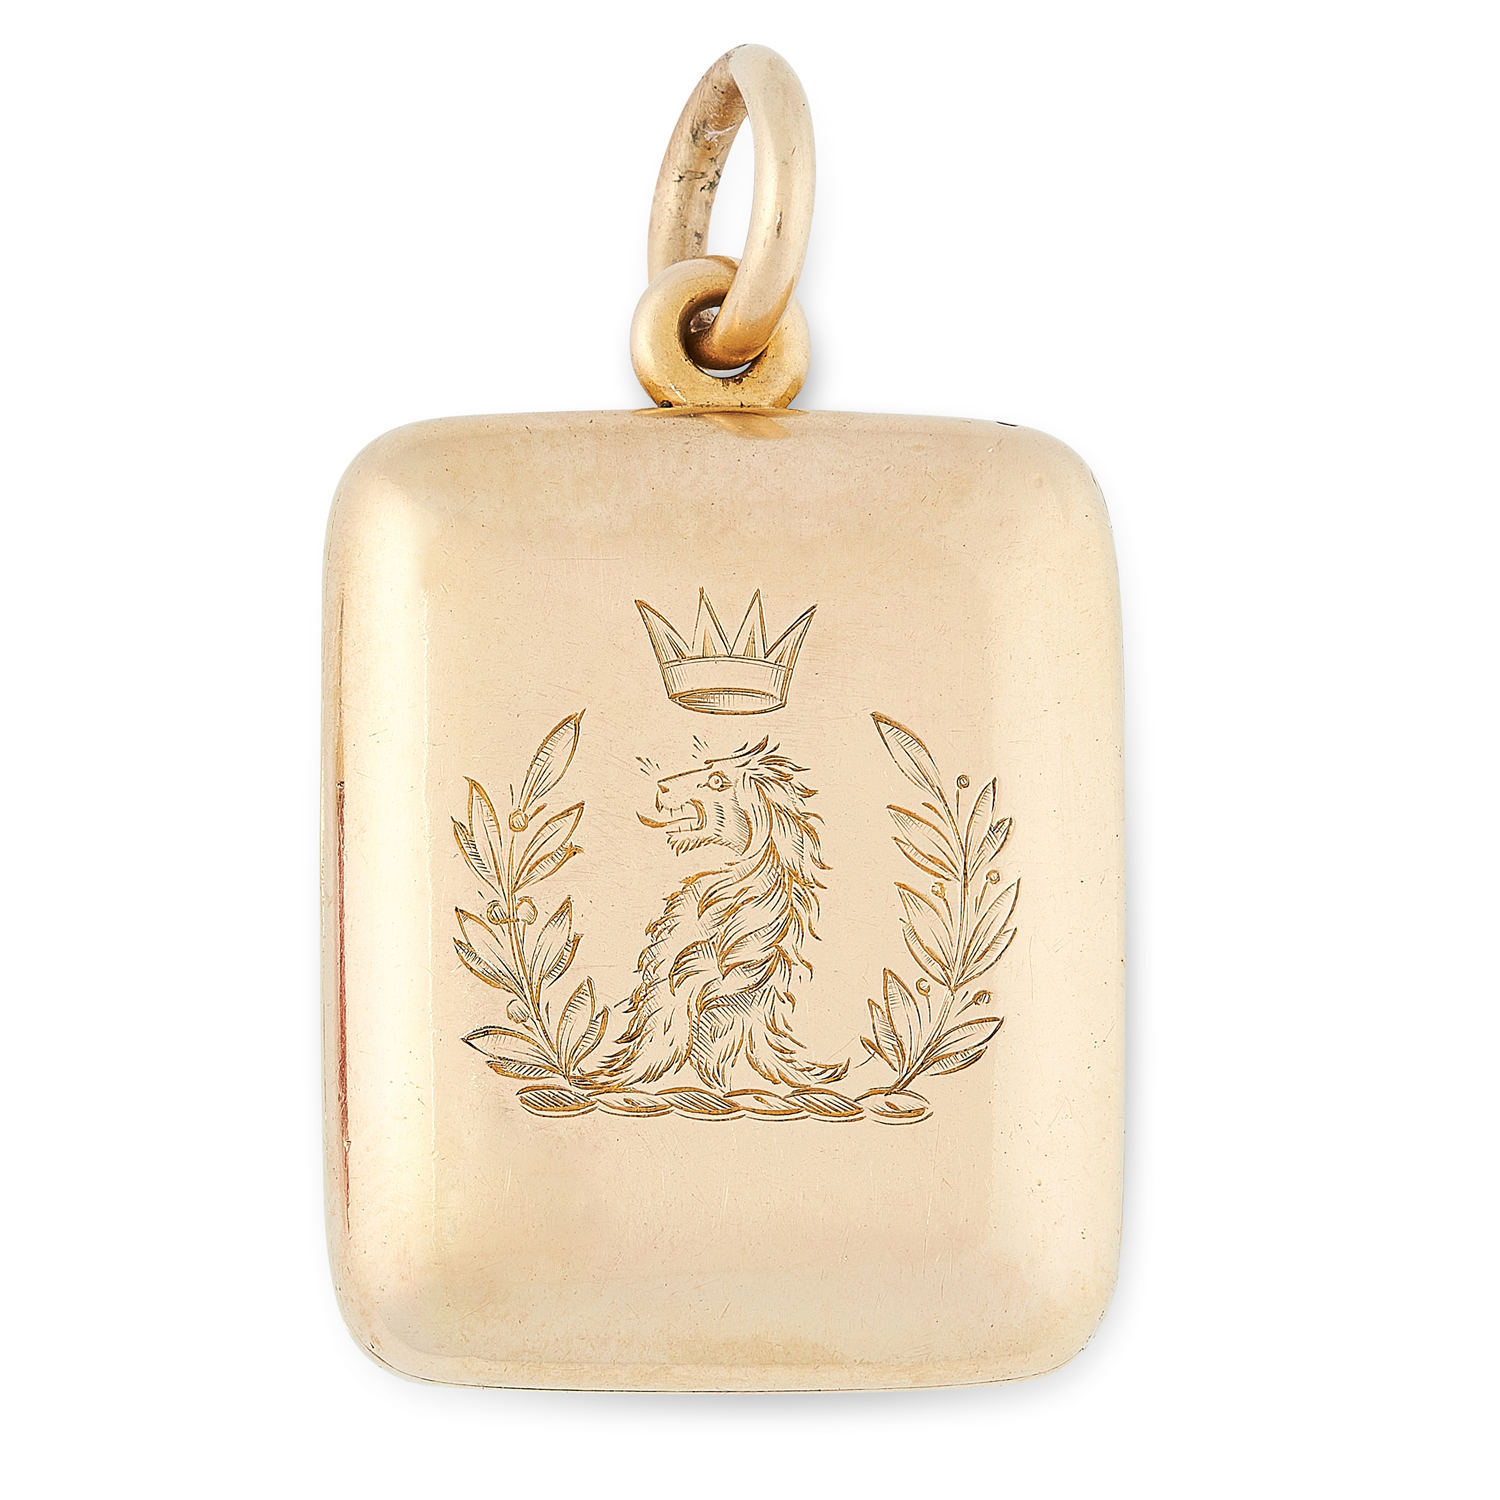 AN ANTIQUE FAMILY LOCKET PENDANT in yellow gold, the rounded rectangular body engraved to the